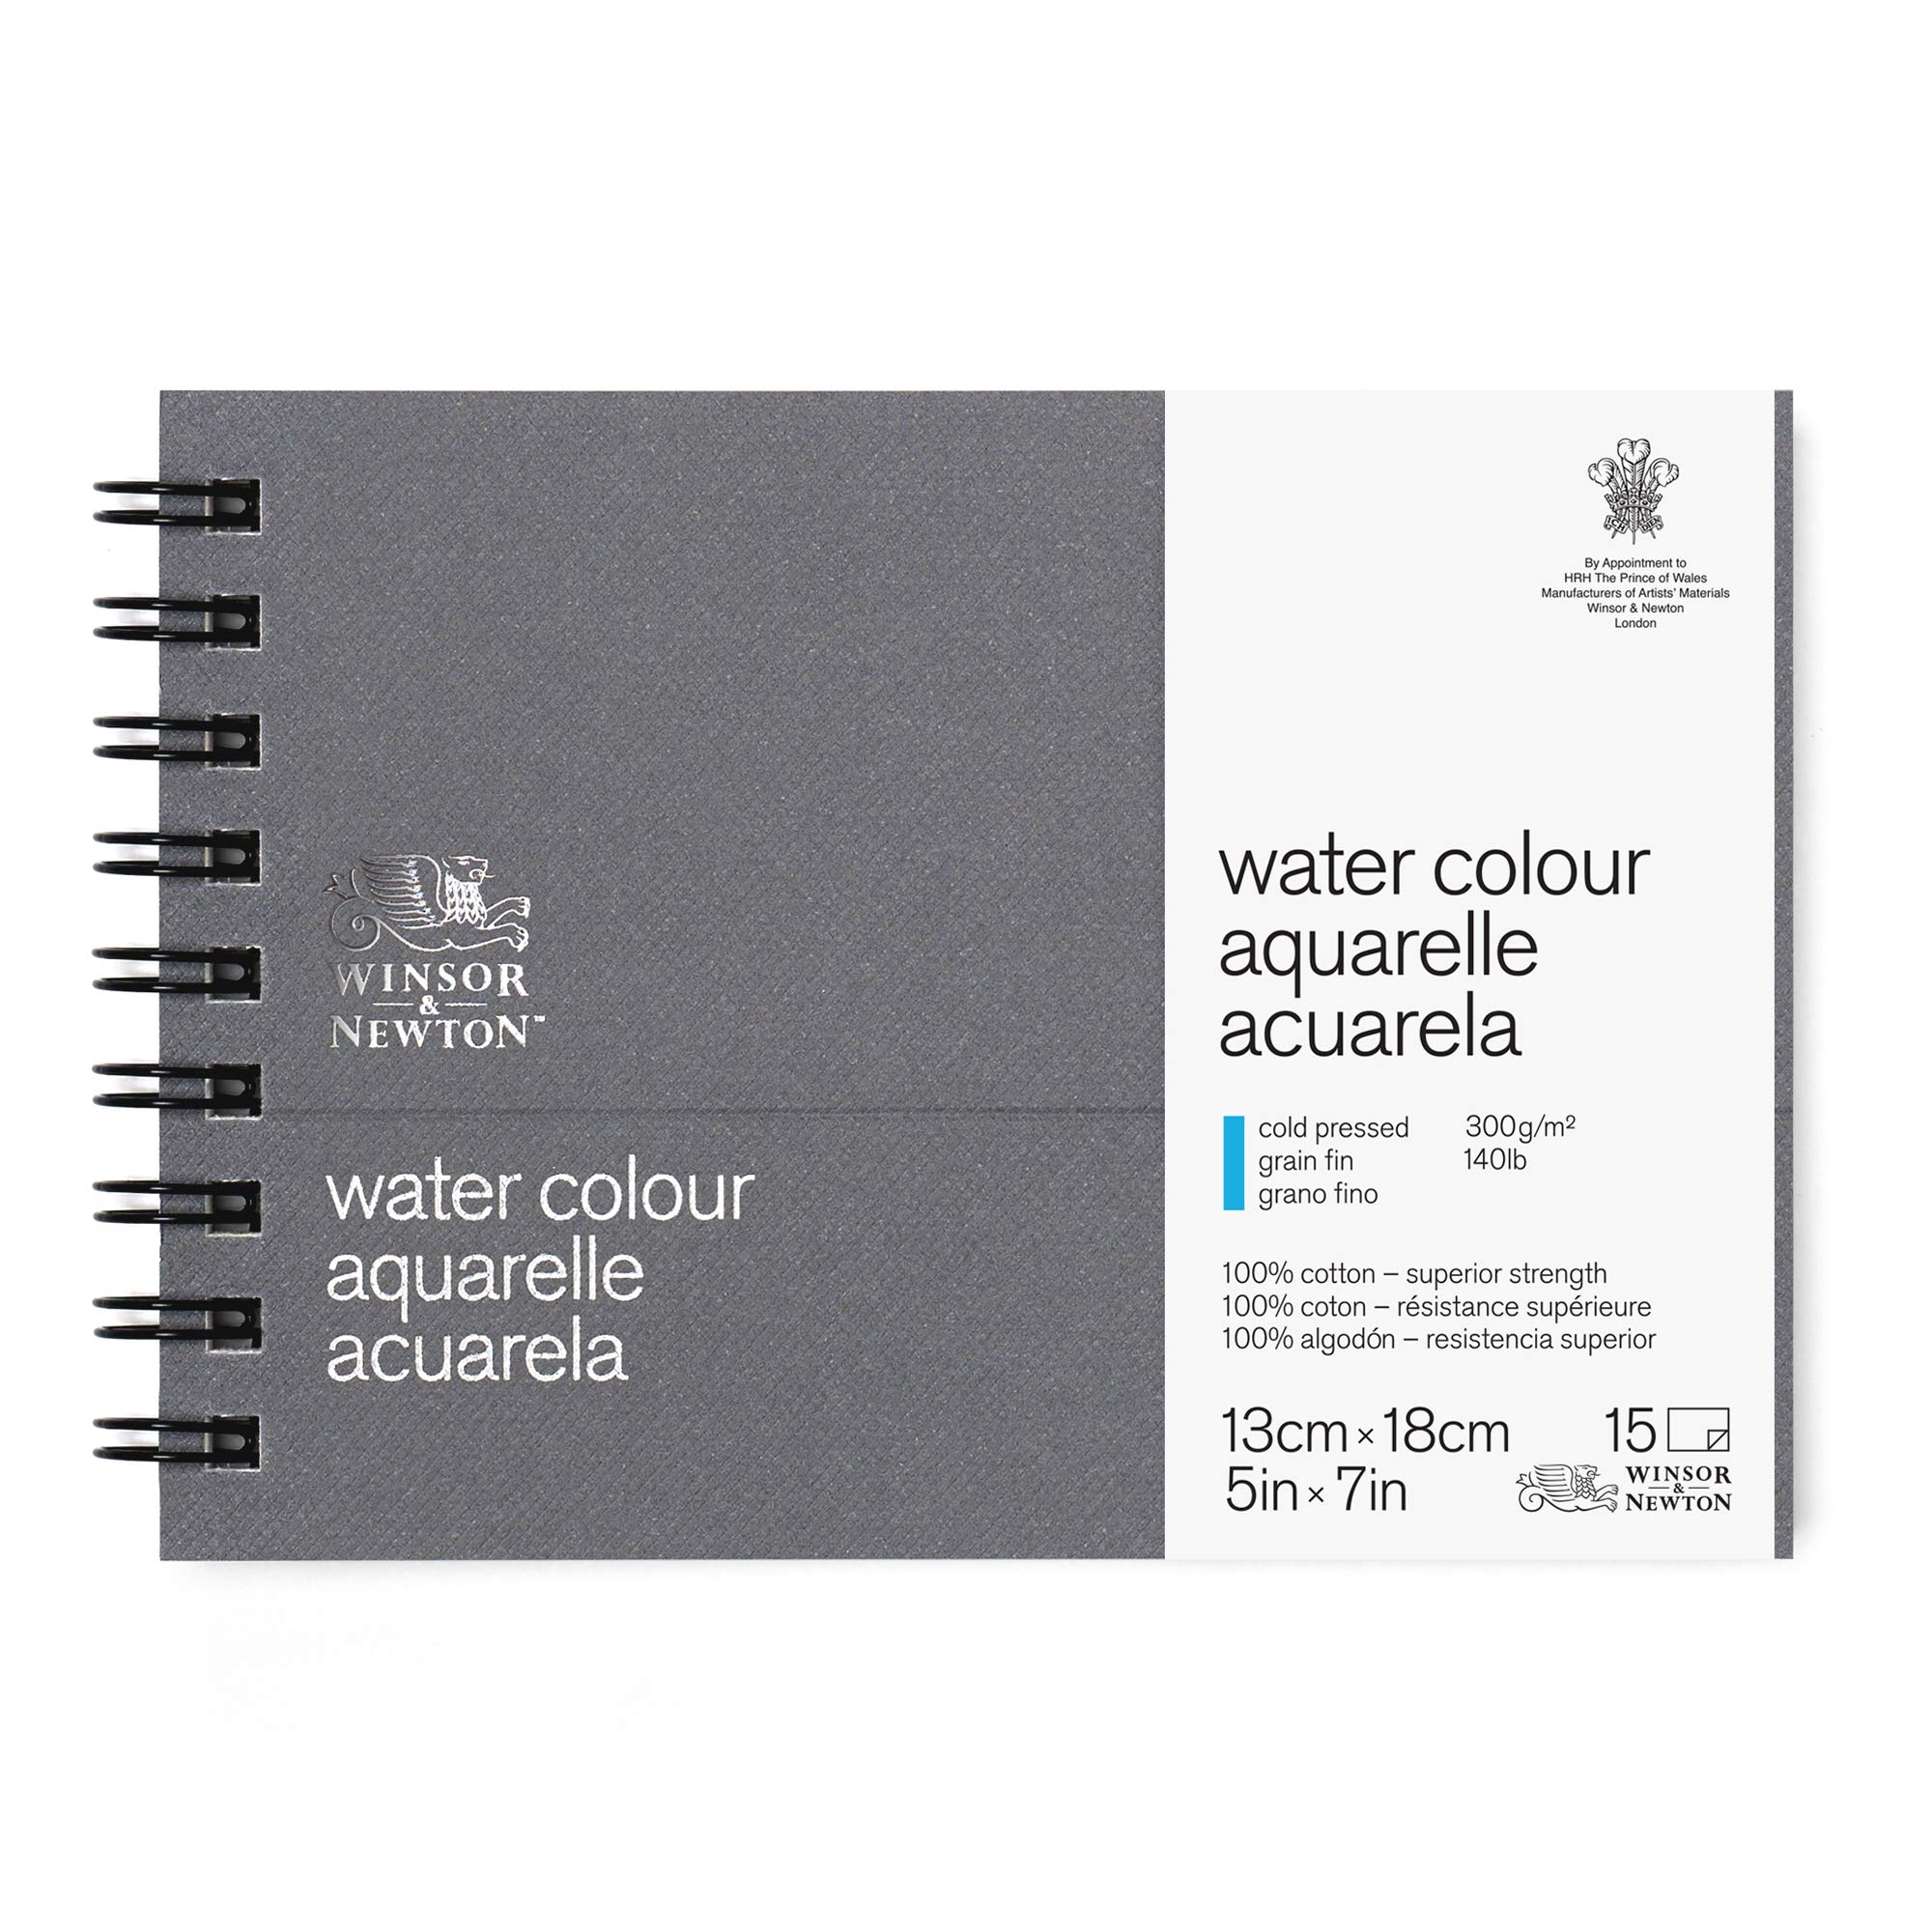 Winsor & Newton Professional Watercolor Paper Journal, Cold Pressed 140lb, 5x7, White by Winsor & Newton